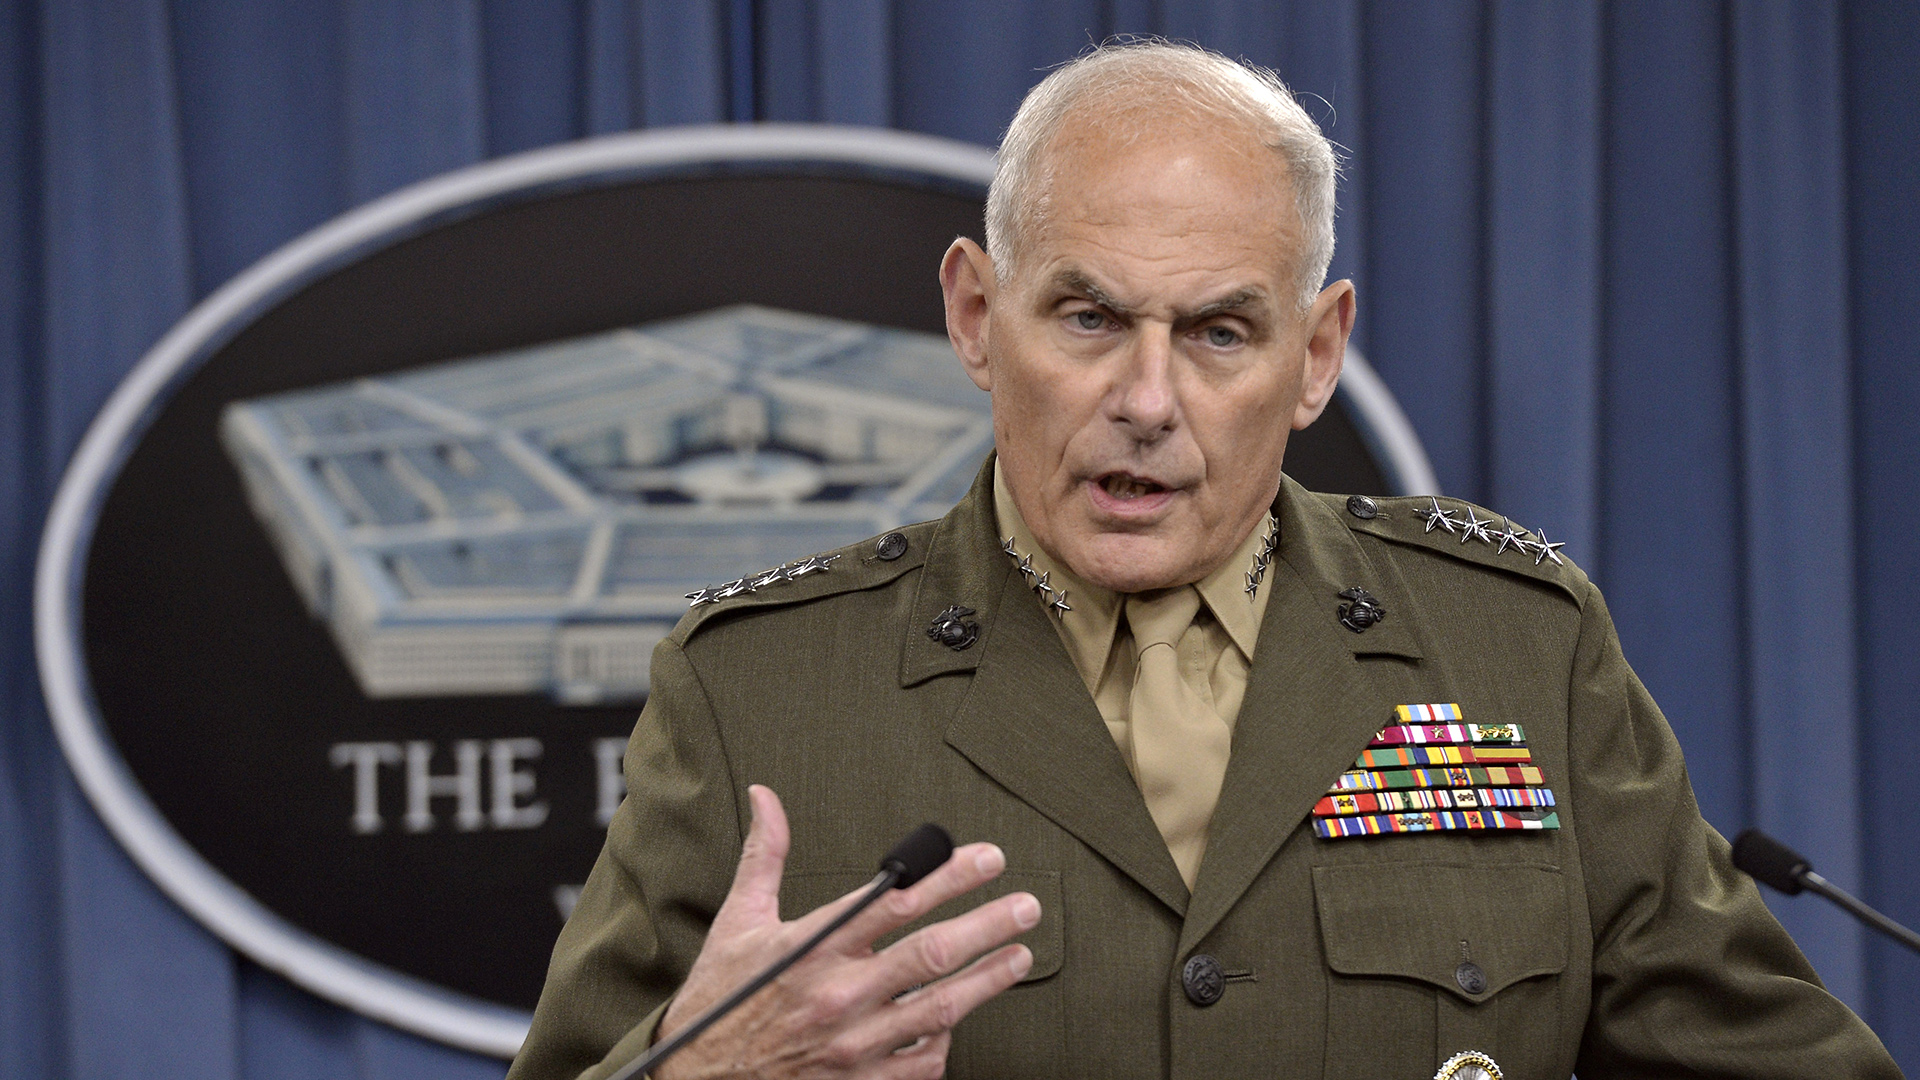 Then-Marine Corps Gen. John F. Kelly in March 2014 discussing developments in his command's efforts to stem the flow of drugs from South and Central America.